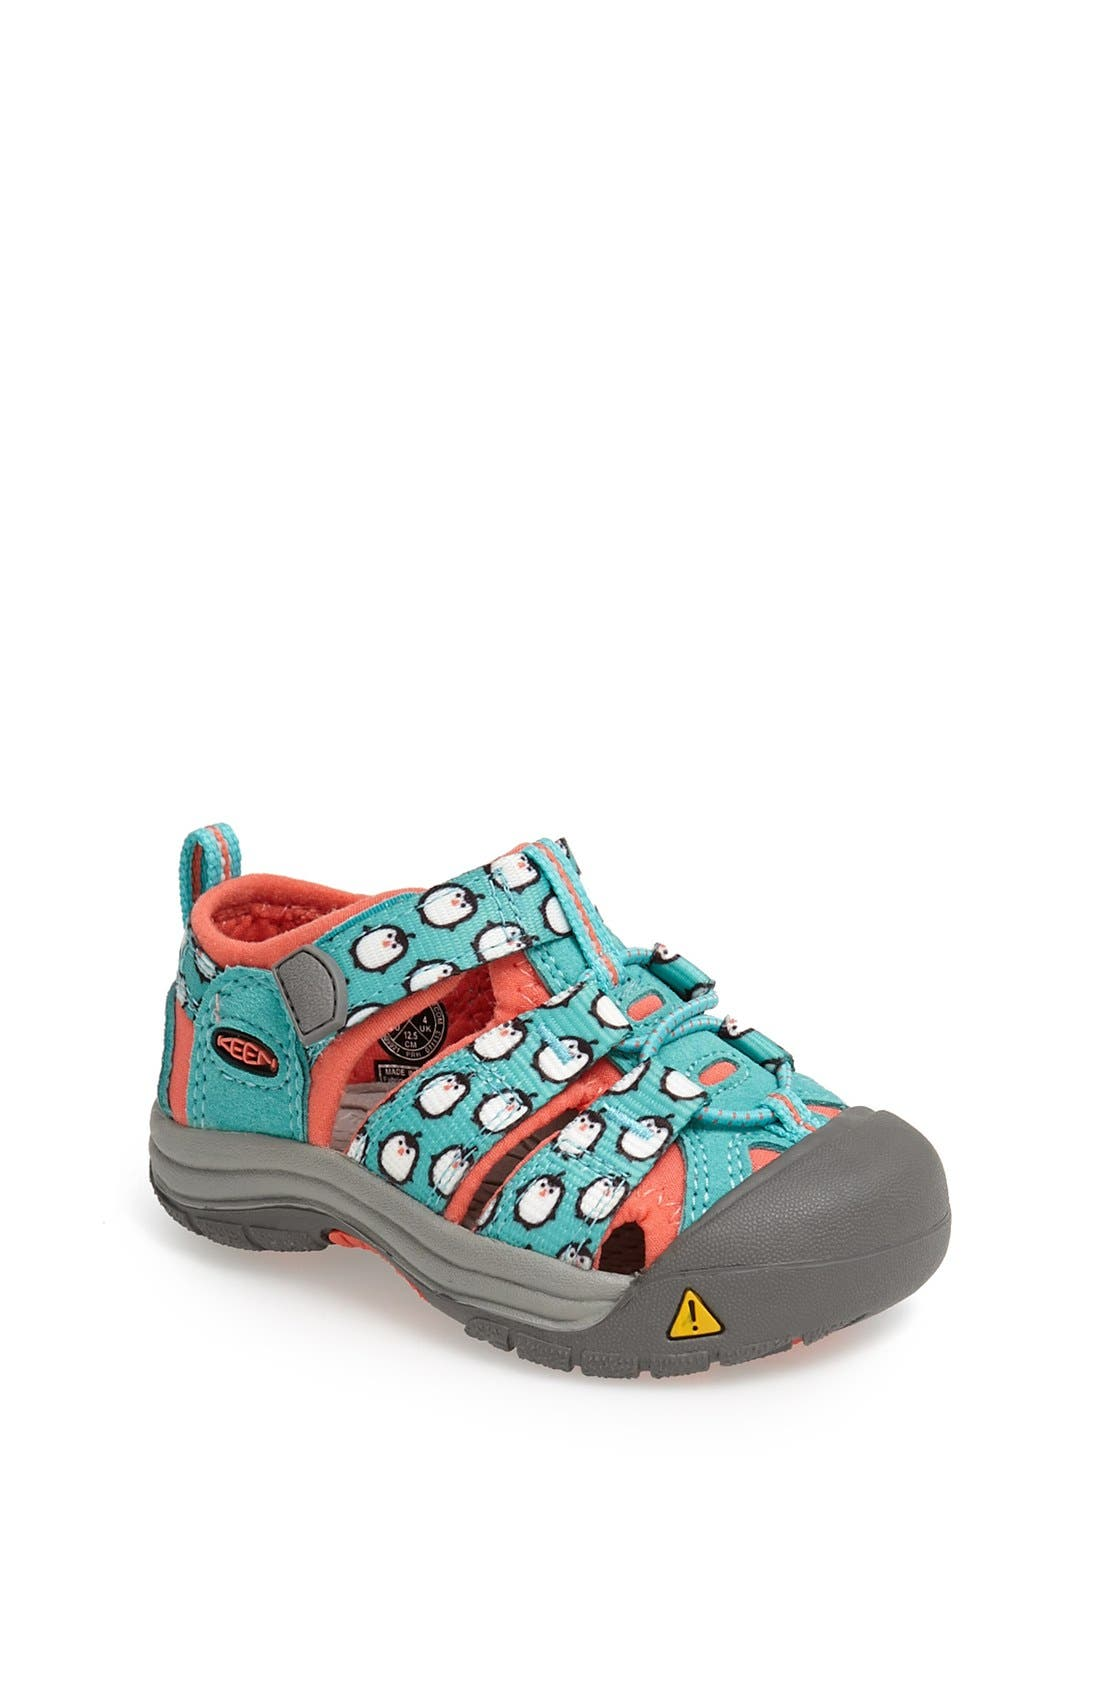 Alternate Image 1 Selected - Keen Newport H2' Print Sandal (Baby & Walker)